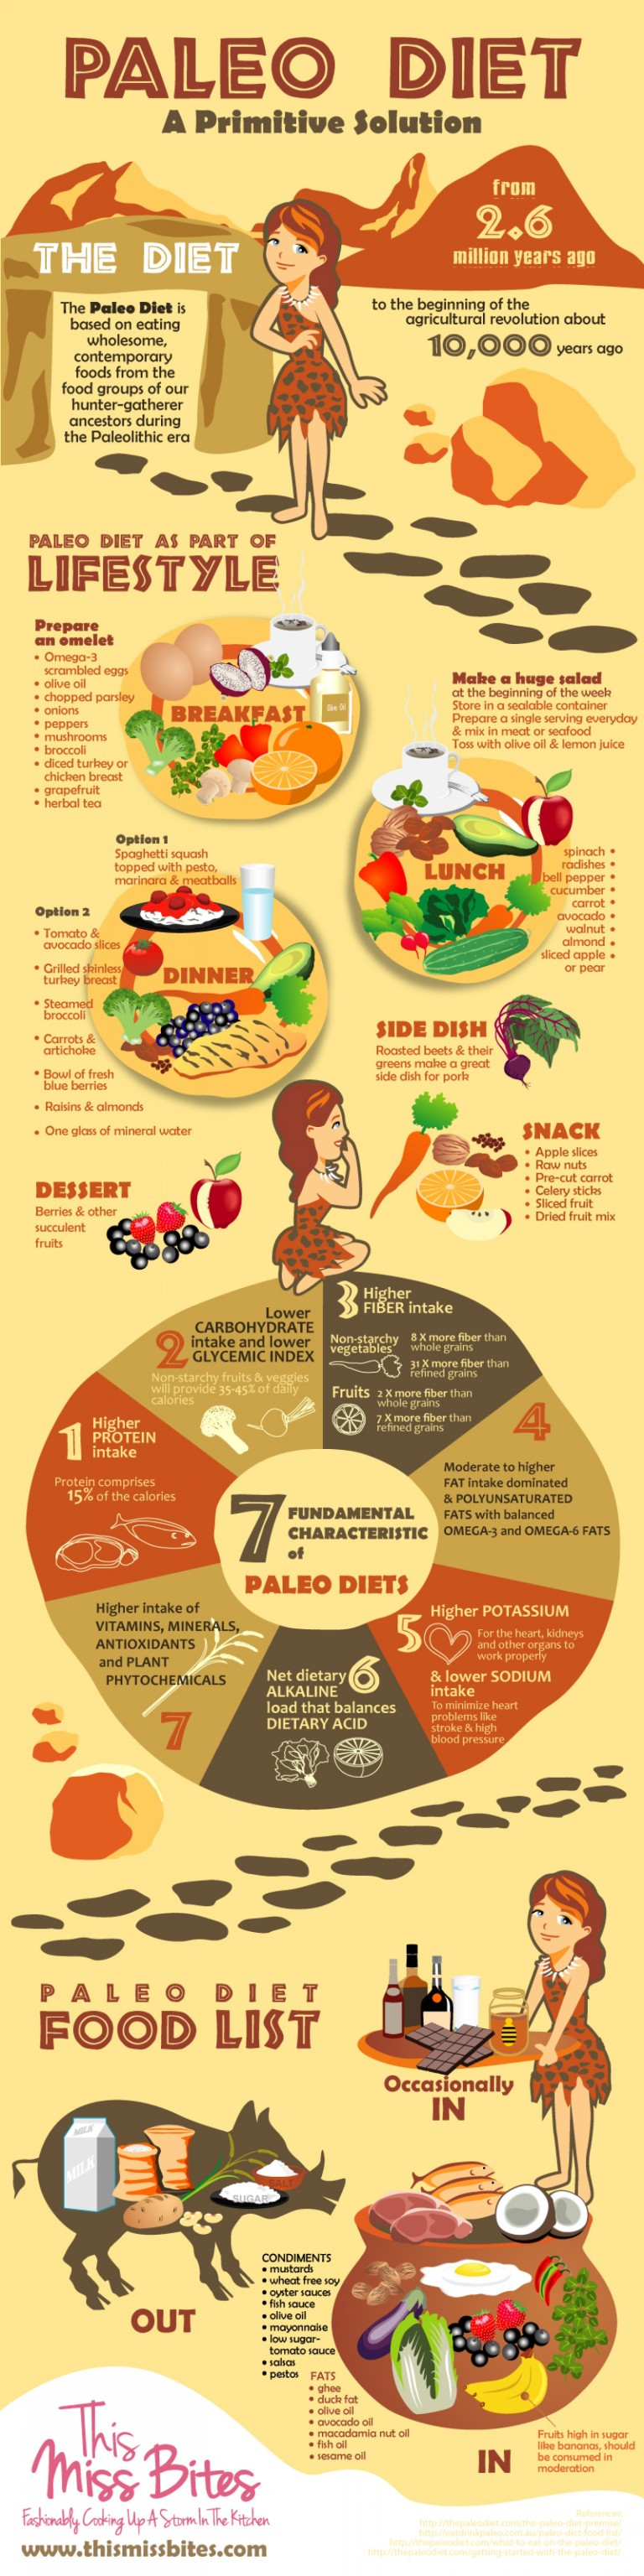 paleo-diet-a-primitive-solution_528069da71ed6_w1500